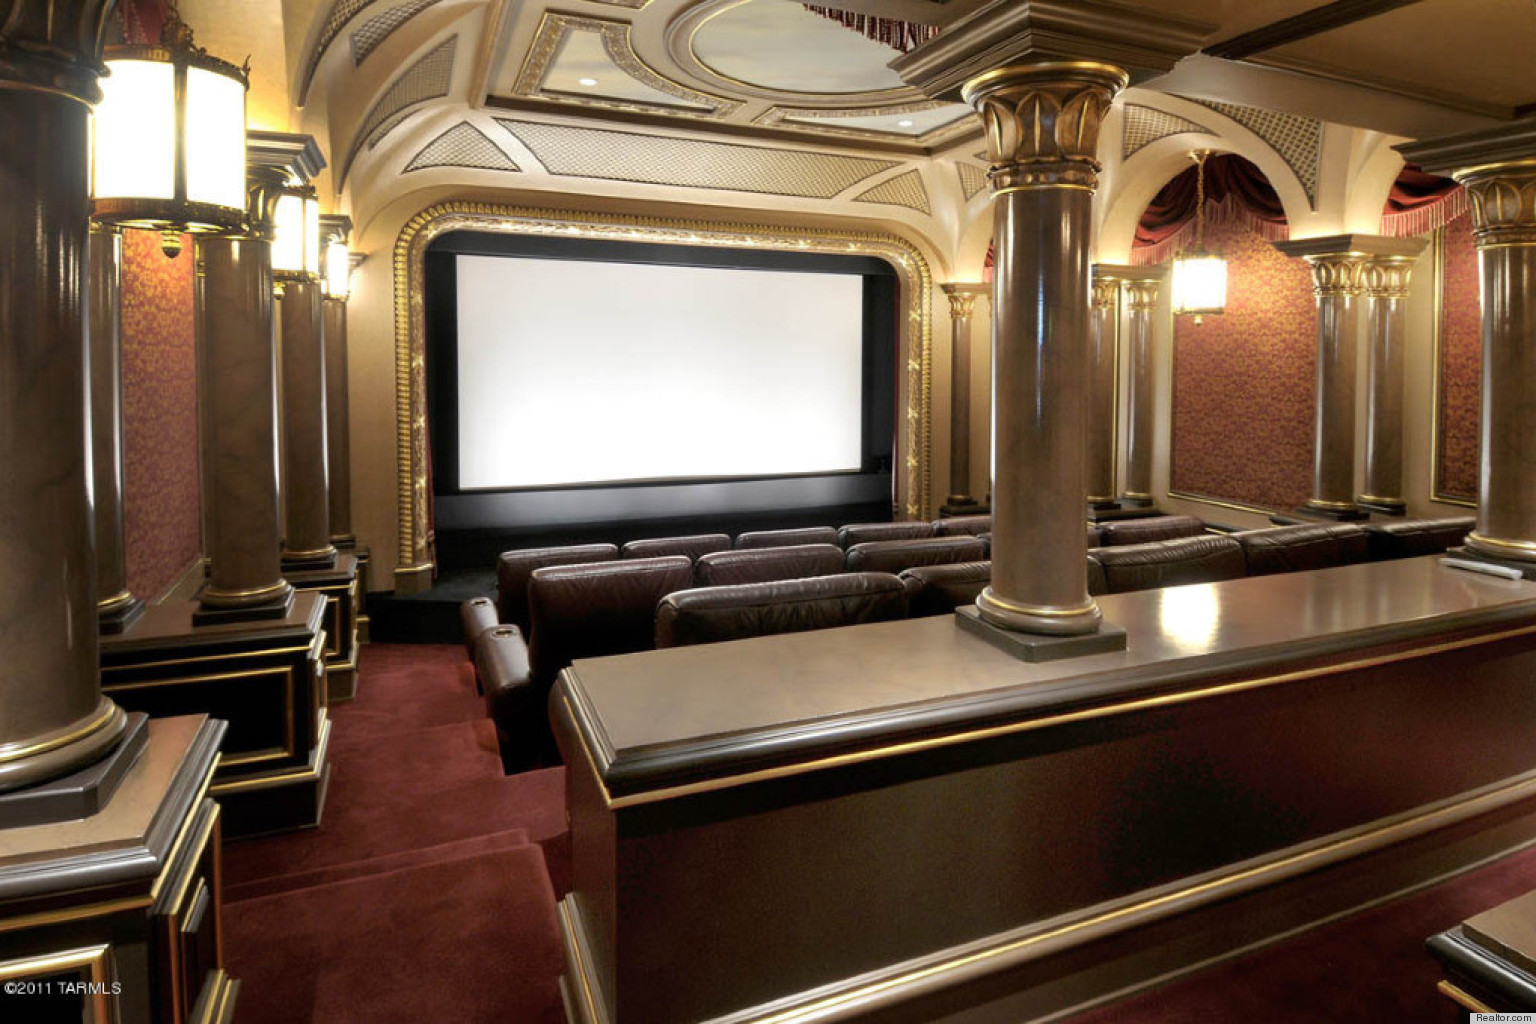 movie theaters with lounge chairs diy removable chair covers 10 stunning home that will put your local multiplex to shame (photos) | huffpost